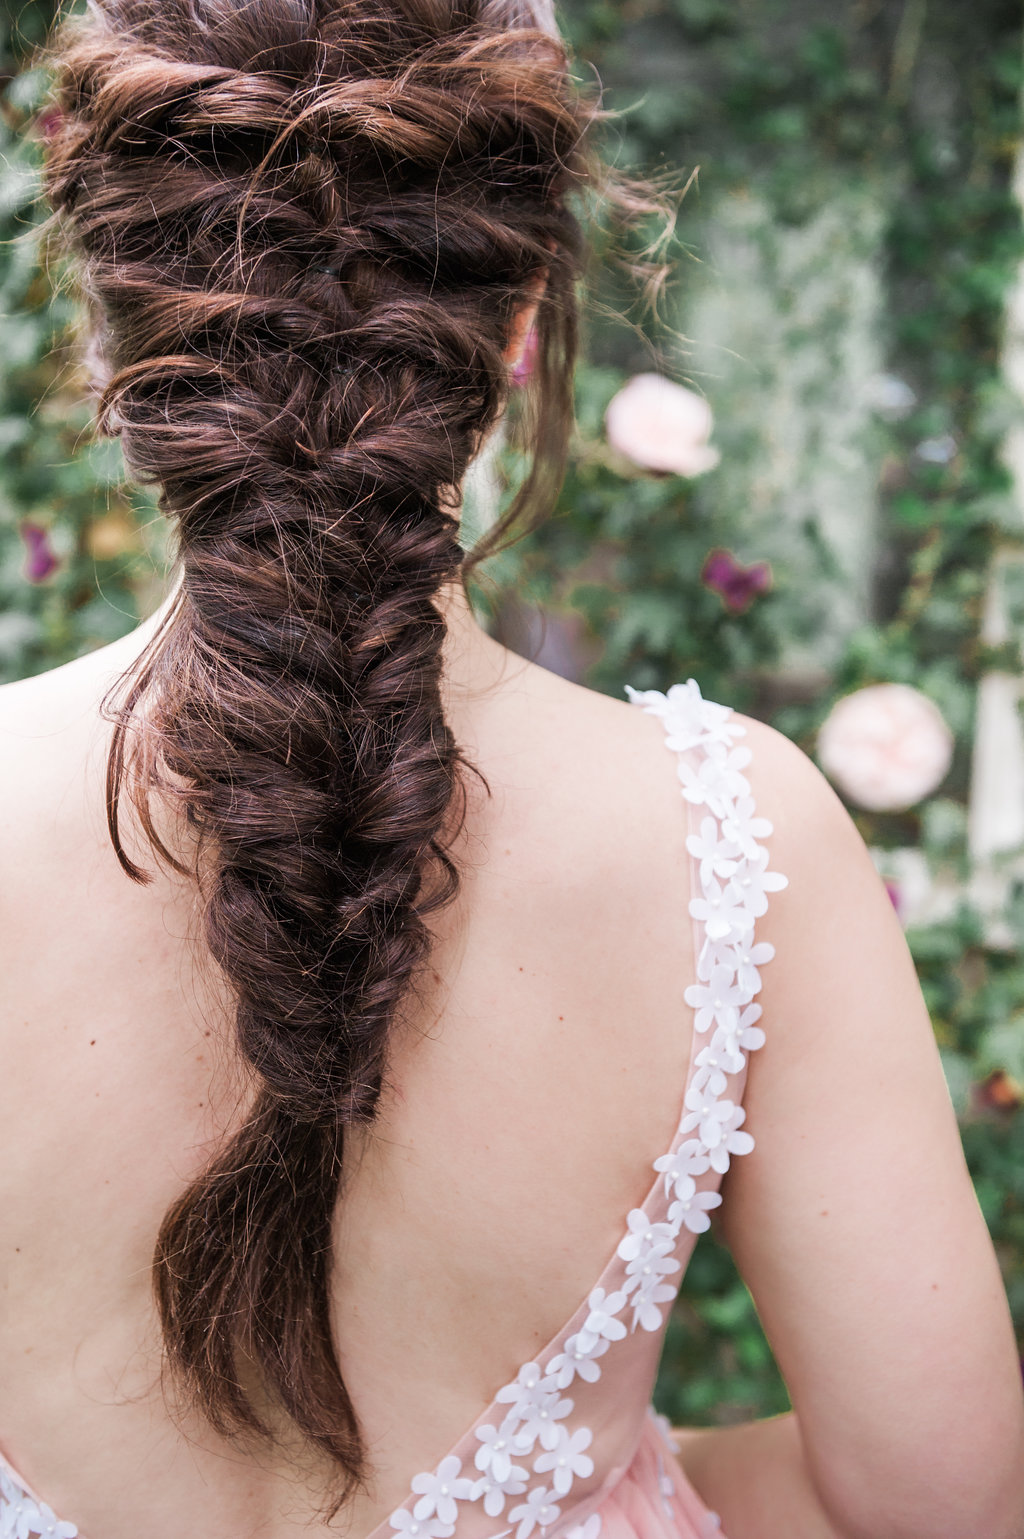 Dark Fairytale inspired Wedding - Wit Photography - Isle de L'Authie France - woods - hair by The beautiful Bride Company Netherlands - fishtail braid - rapunzel hair